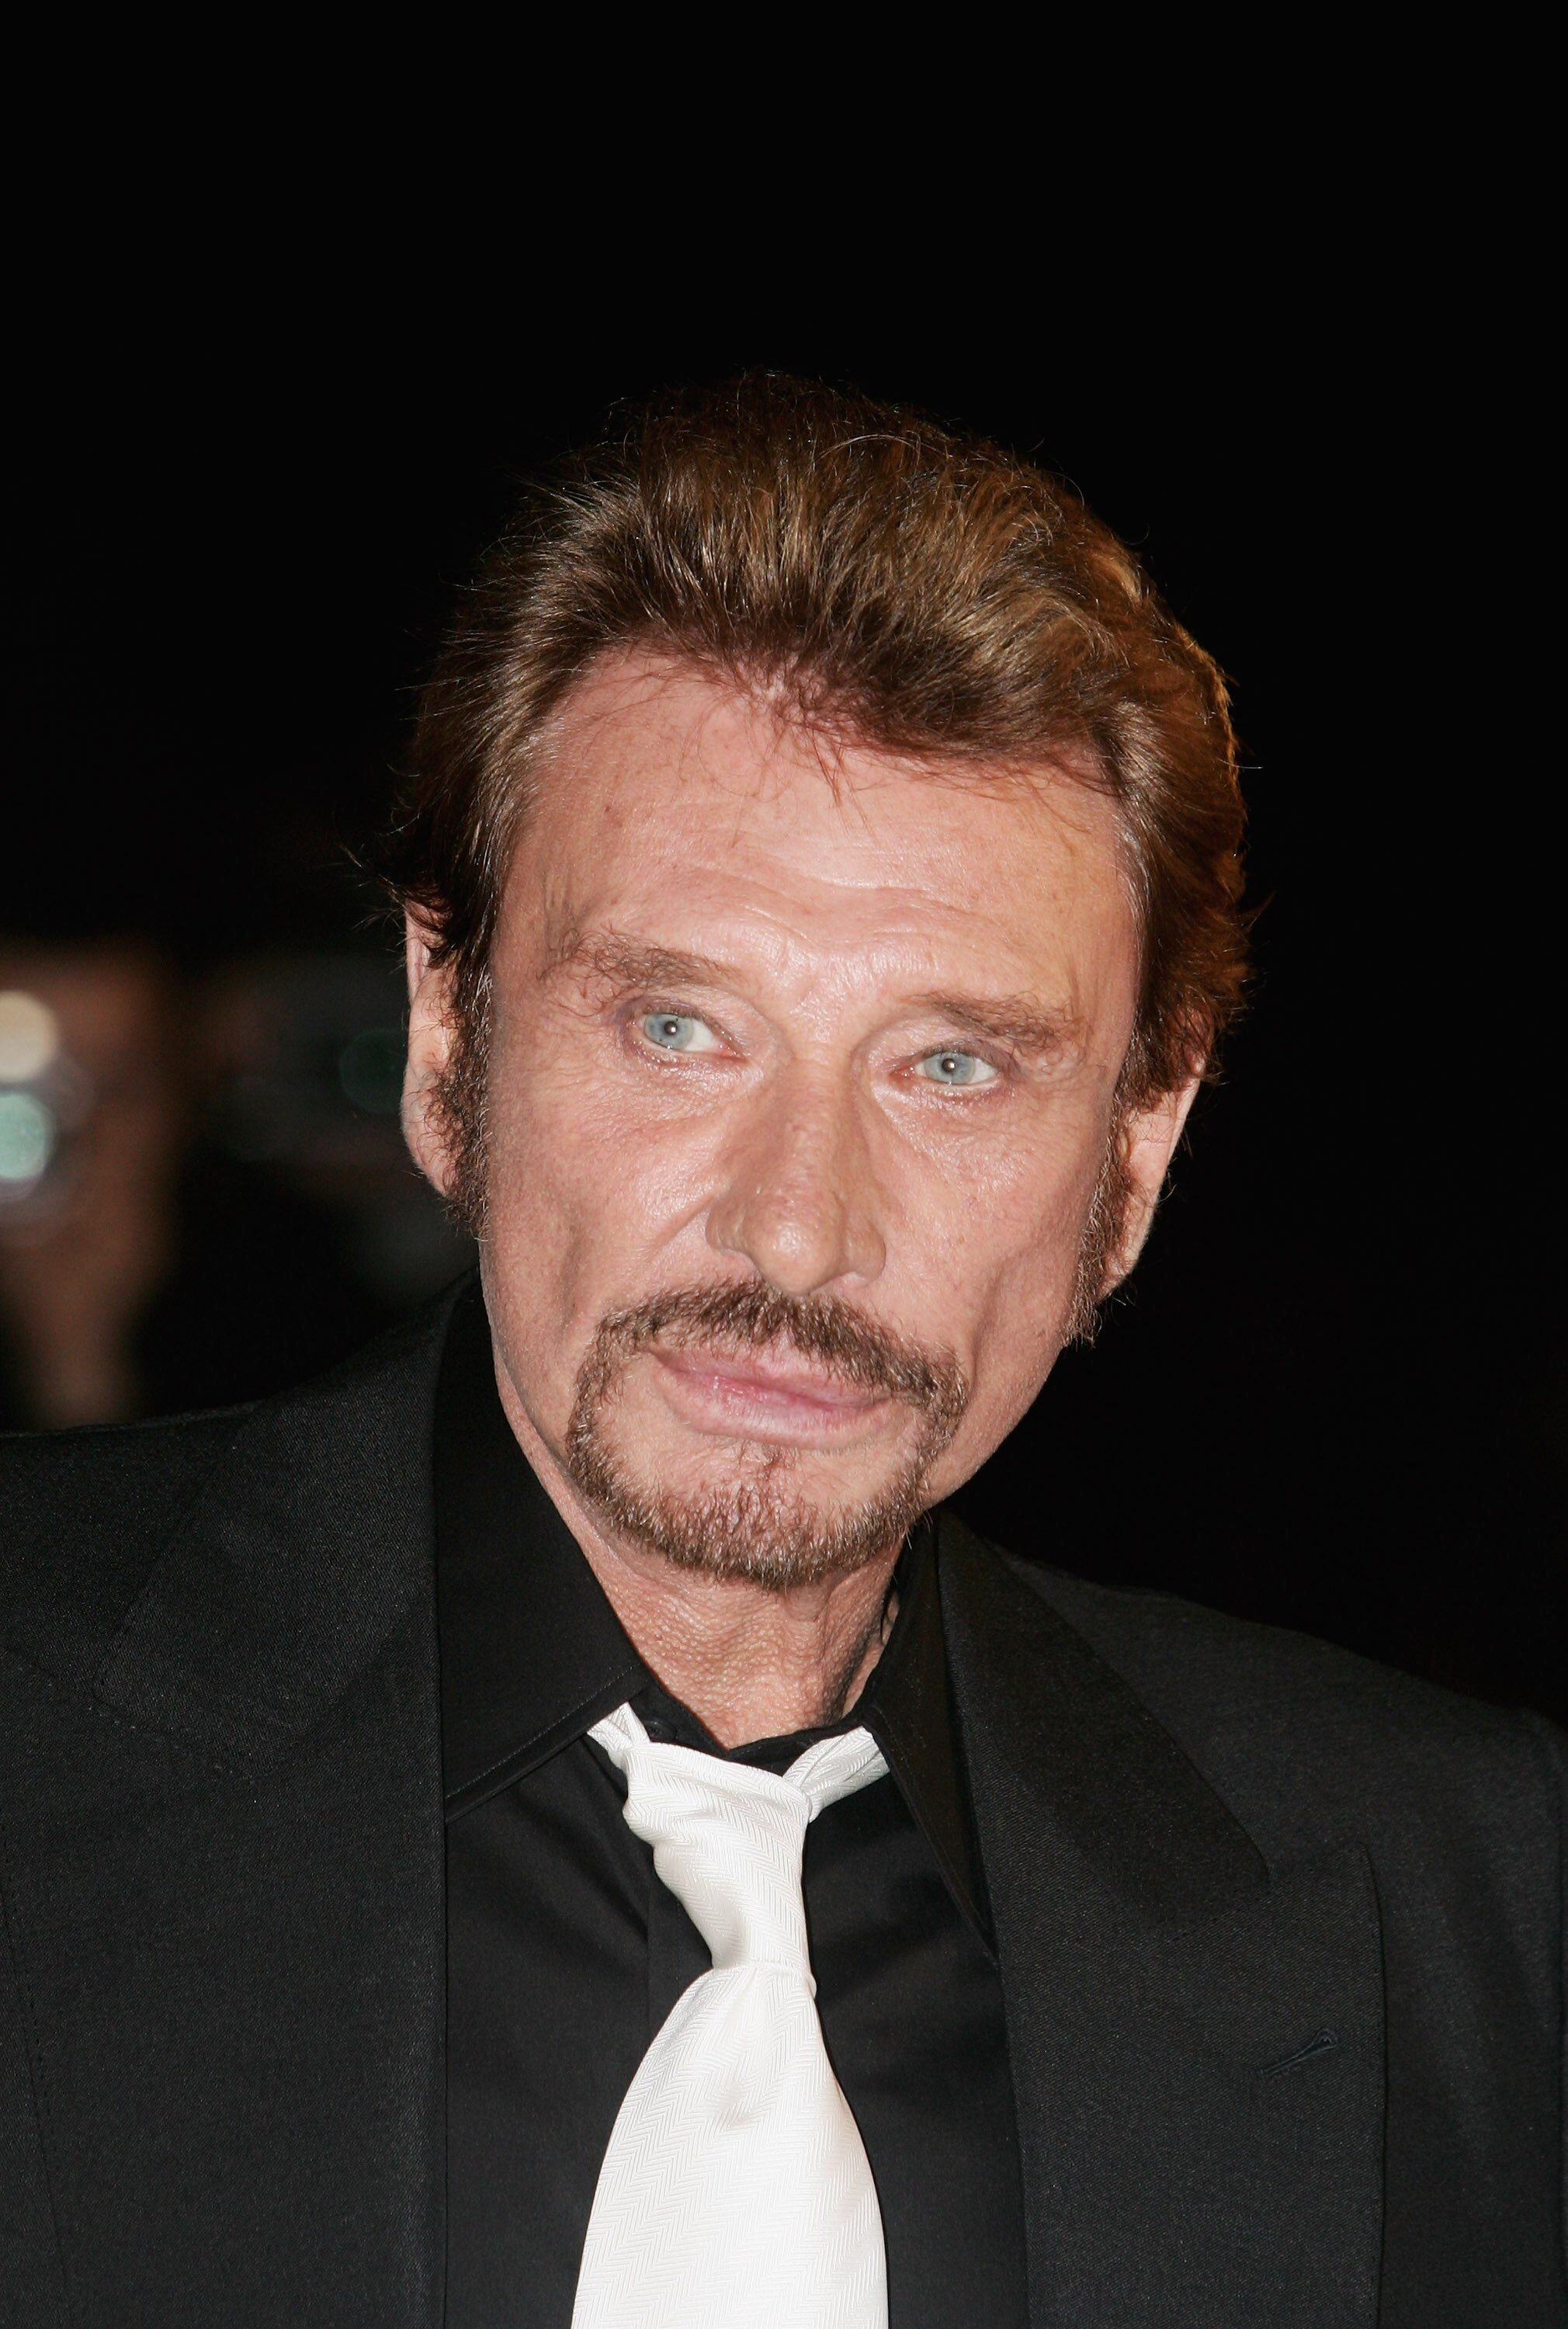 Johnny Hallyday se présente aux NRJ Music Awards 2006 au Palais des Festivals le 21 janvier 2006 à Cannes. | Photo : Getty Images